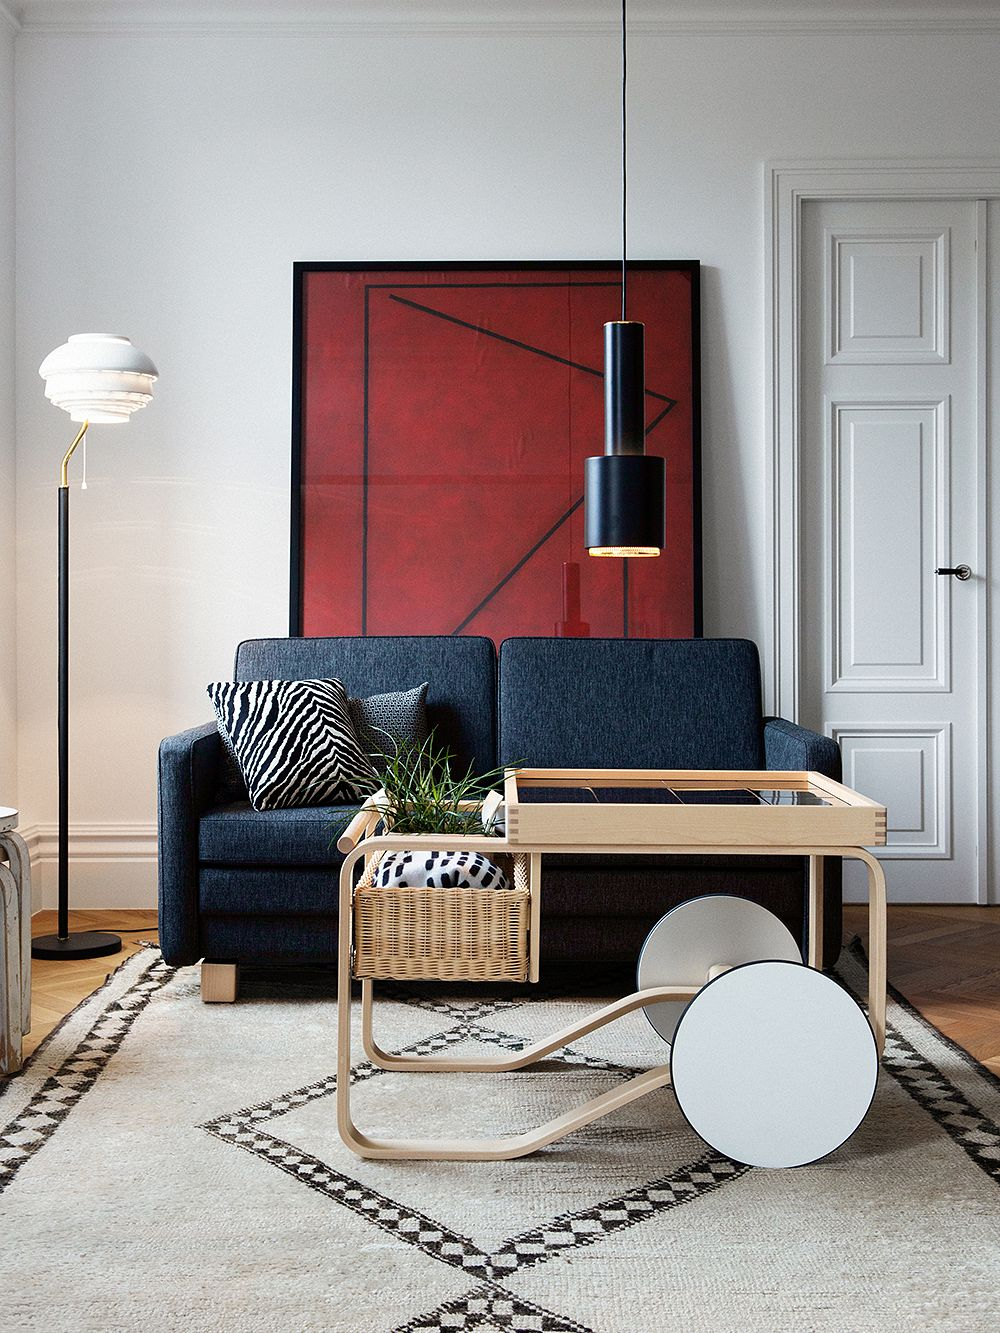 Alvar Aalto's designs A110, A808 and the Tea trolley in a living room setting.